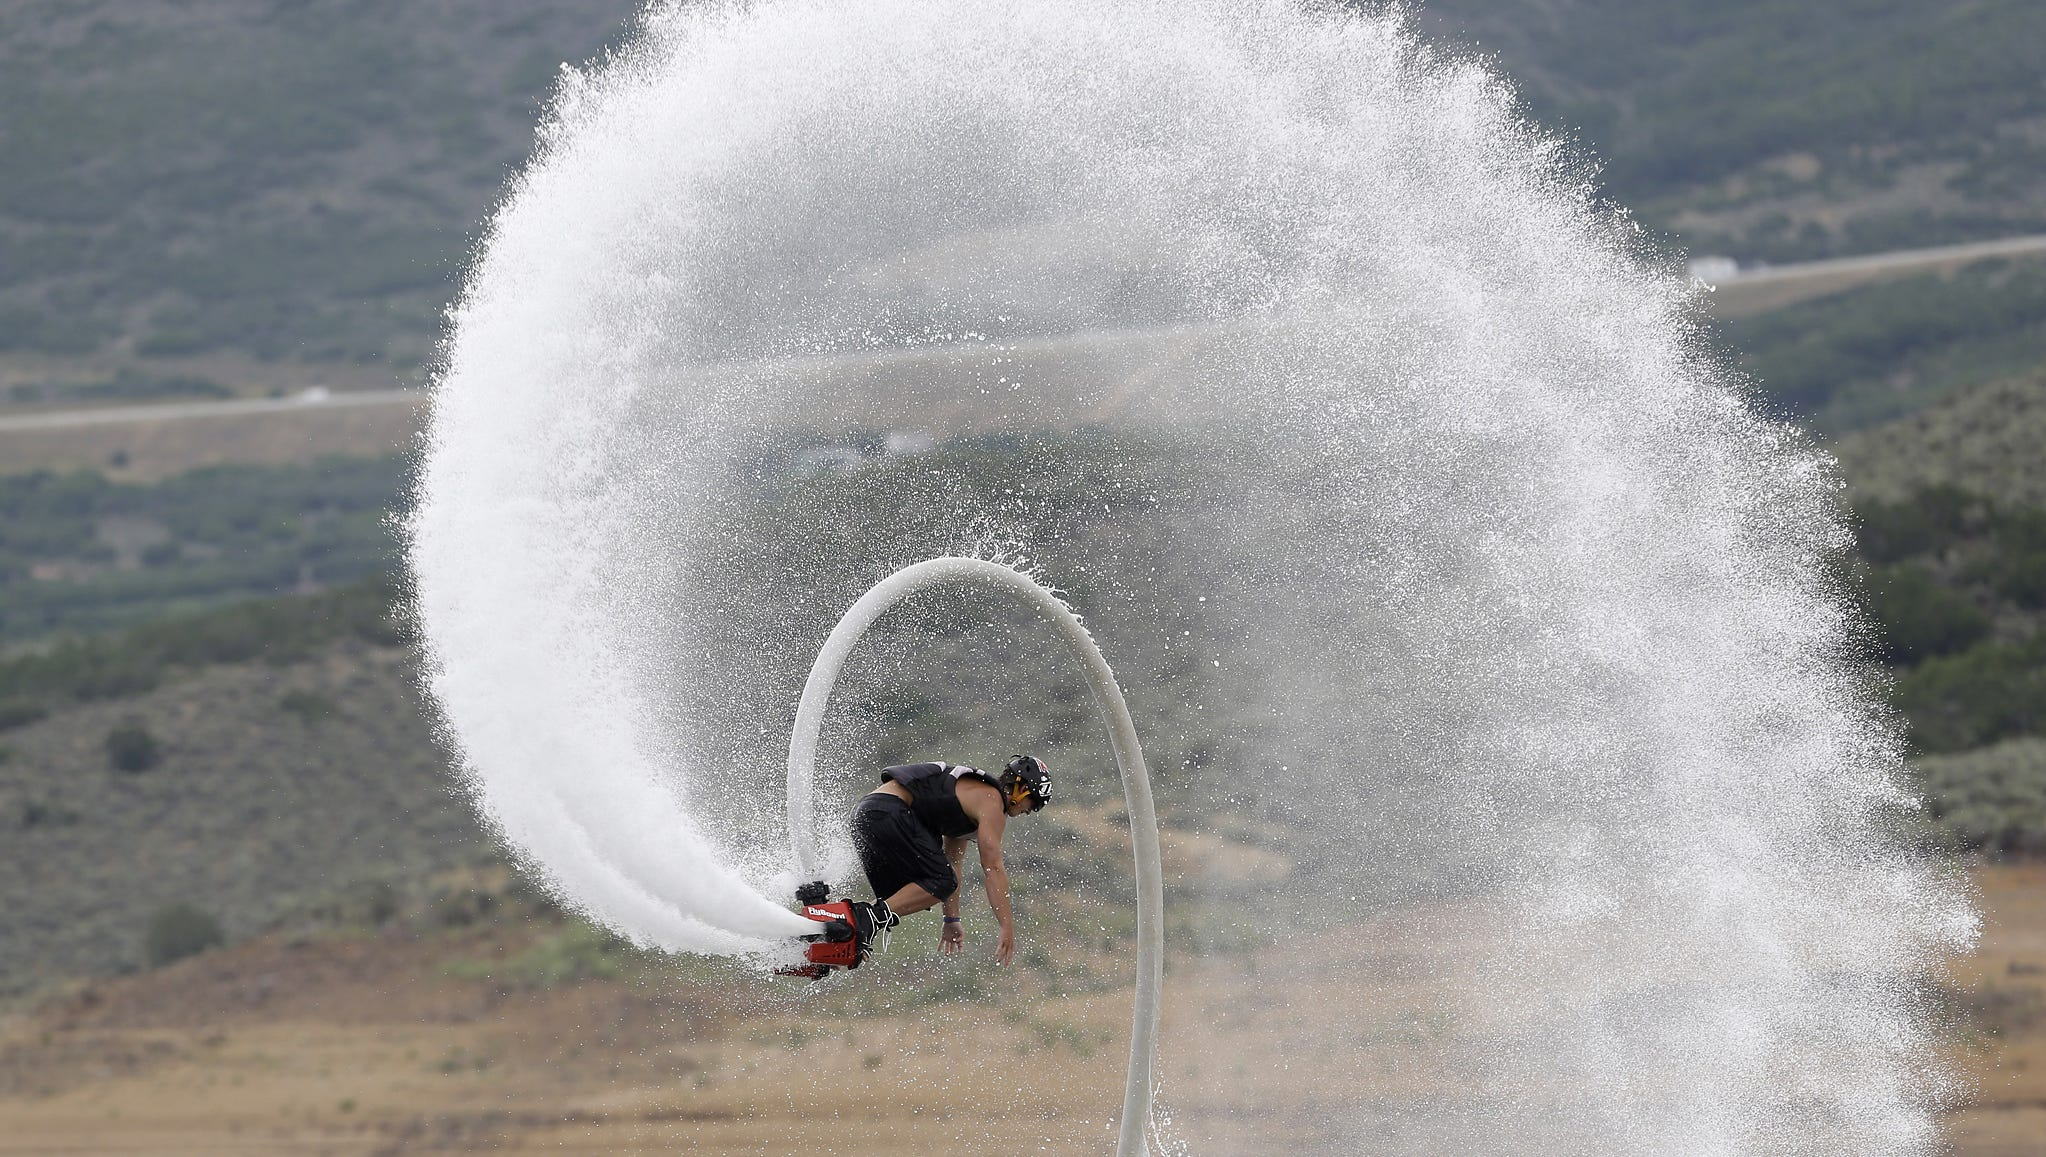 Rocky Mountain Flyboard instructor Chase Shaw does a flip with his flyboard at the Jordanelle Reservoir on July 24 at Jordanelle State Park, Utah. The device, which looks like a small snowboard attached to a hose, can propel a rider 45 feet in the air using water pumped from a personal watercraft like a jet ski.